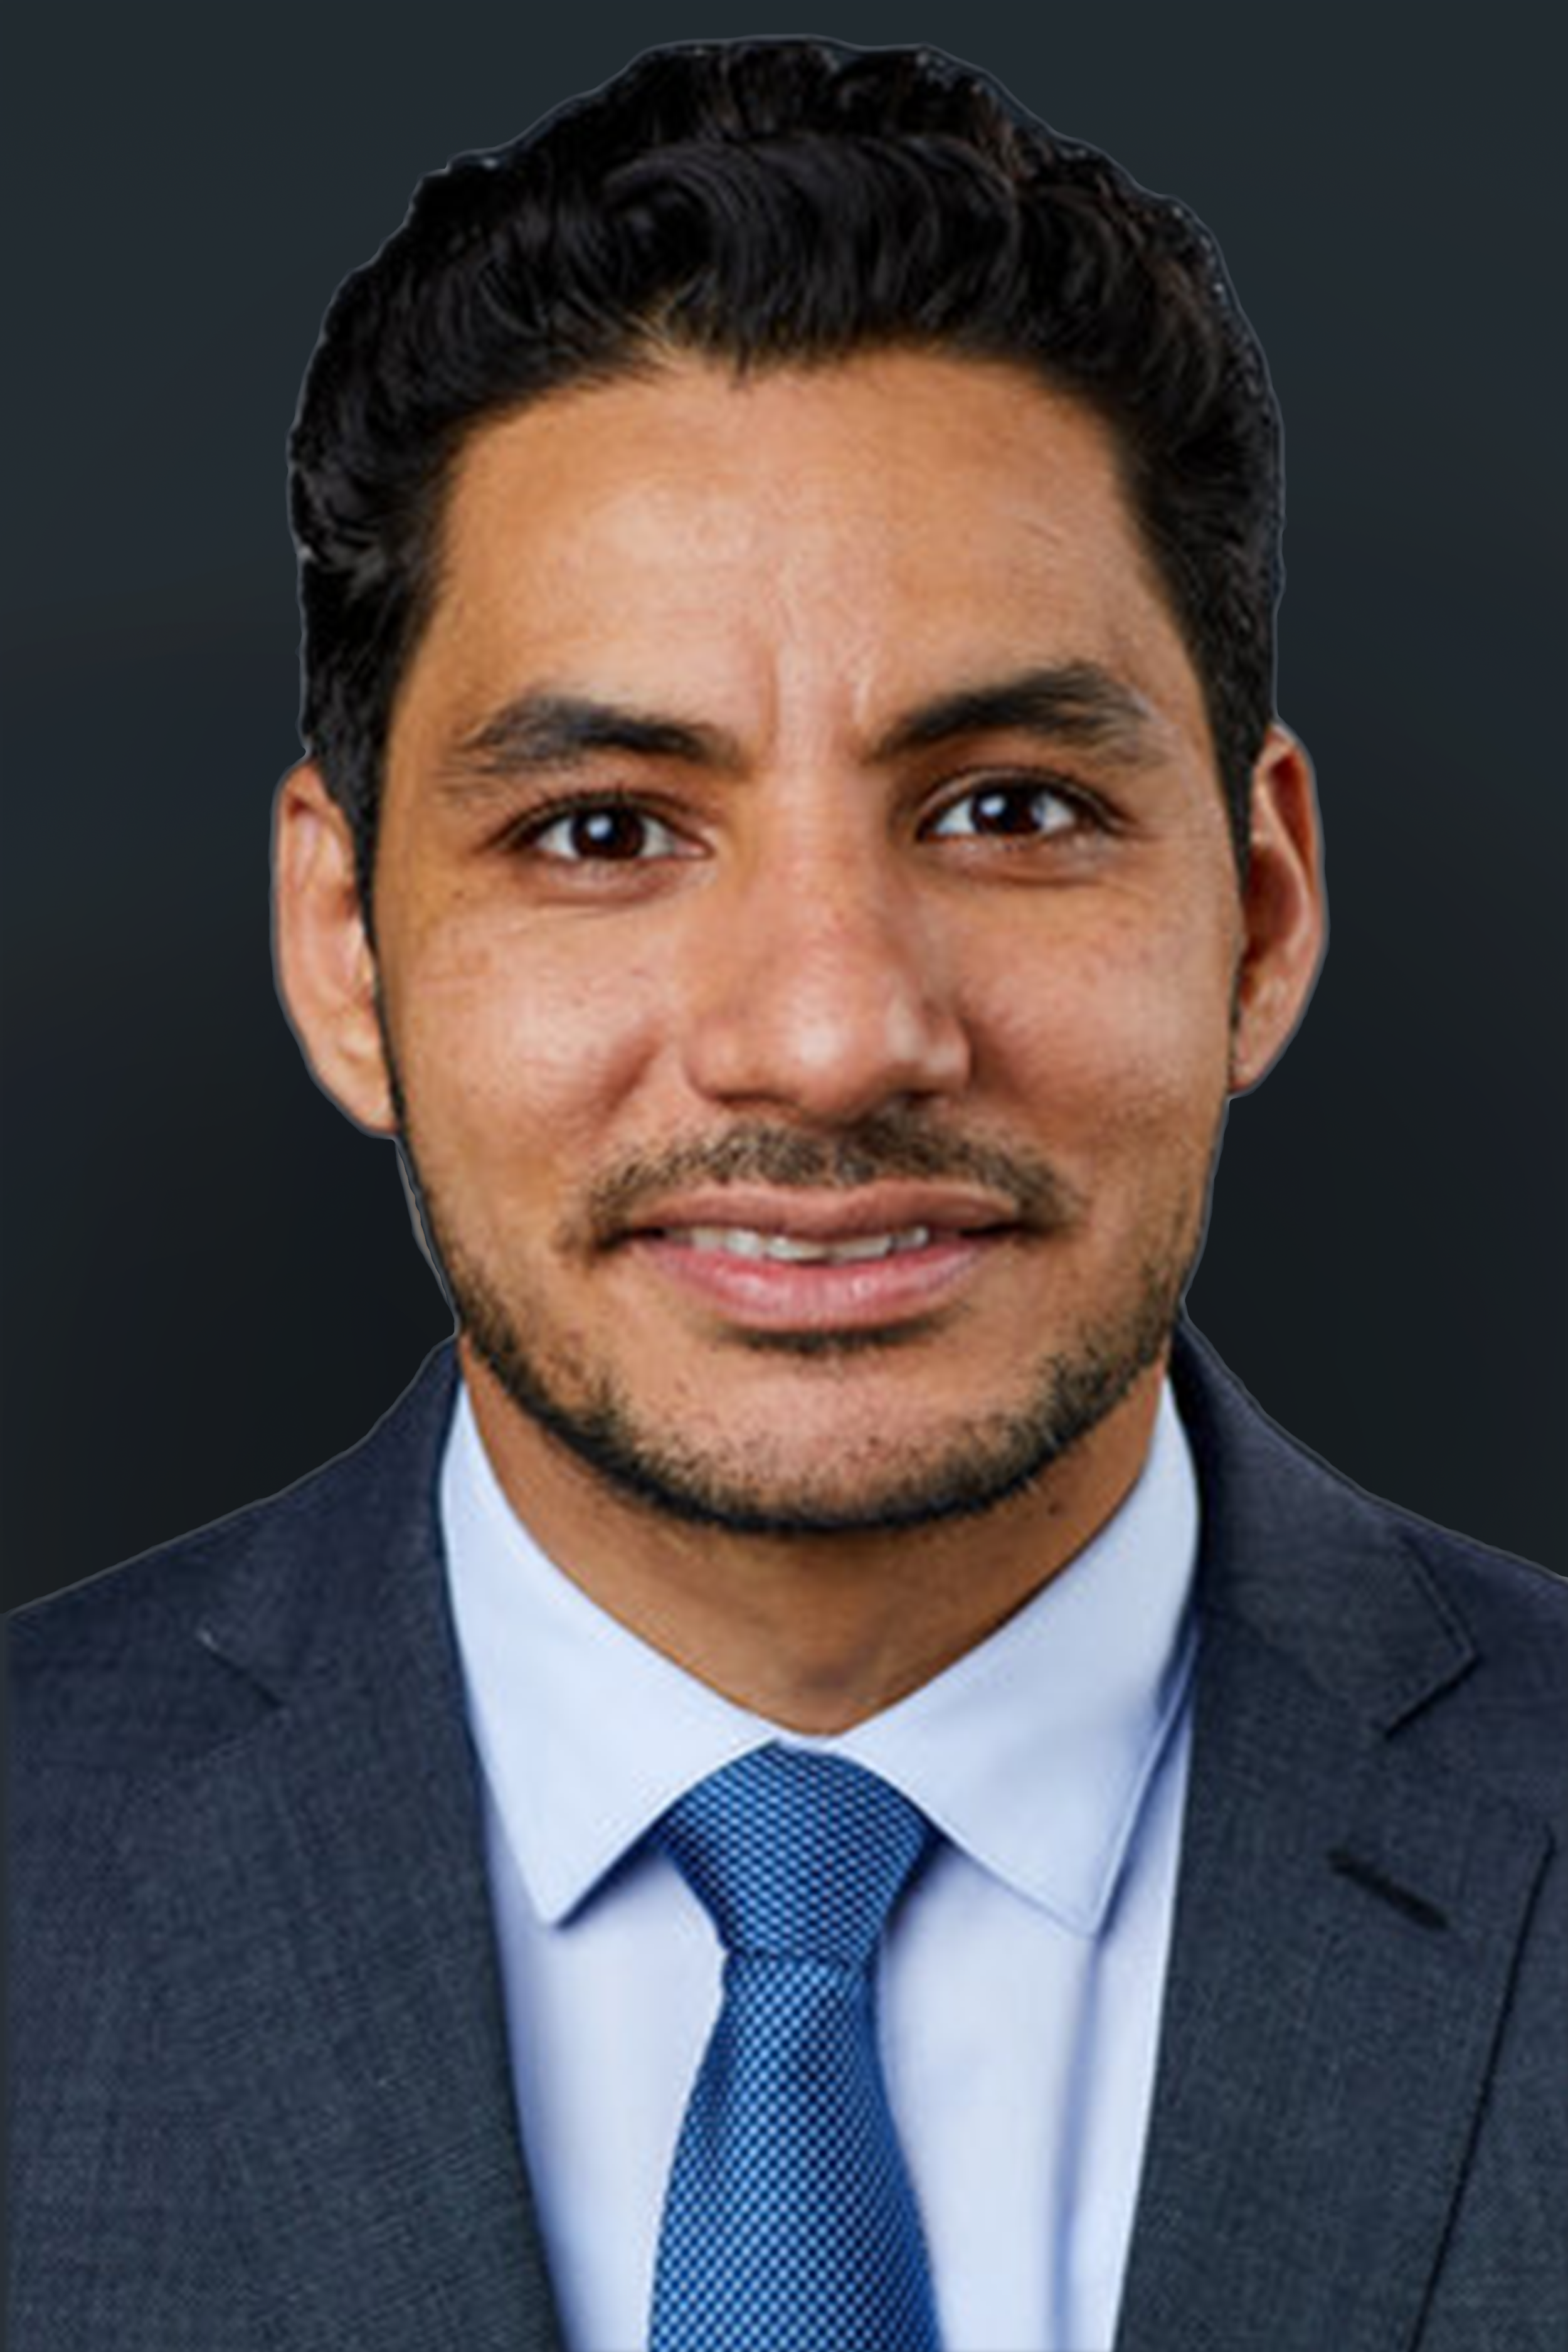 Sherif Soliman, PhD, MBA- Chief Technology Officer & CEO - Founding scientist of Biostage Inc. Has 15+ years of hands-on experience in designing polymeric scaffolds for tissue engineering, and 8 years of medical device manufacturing experience.